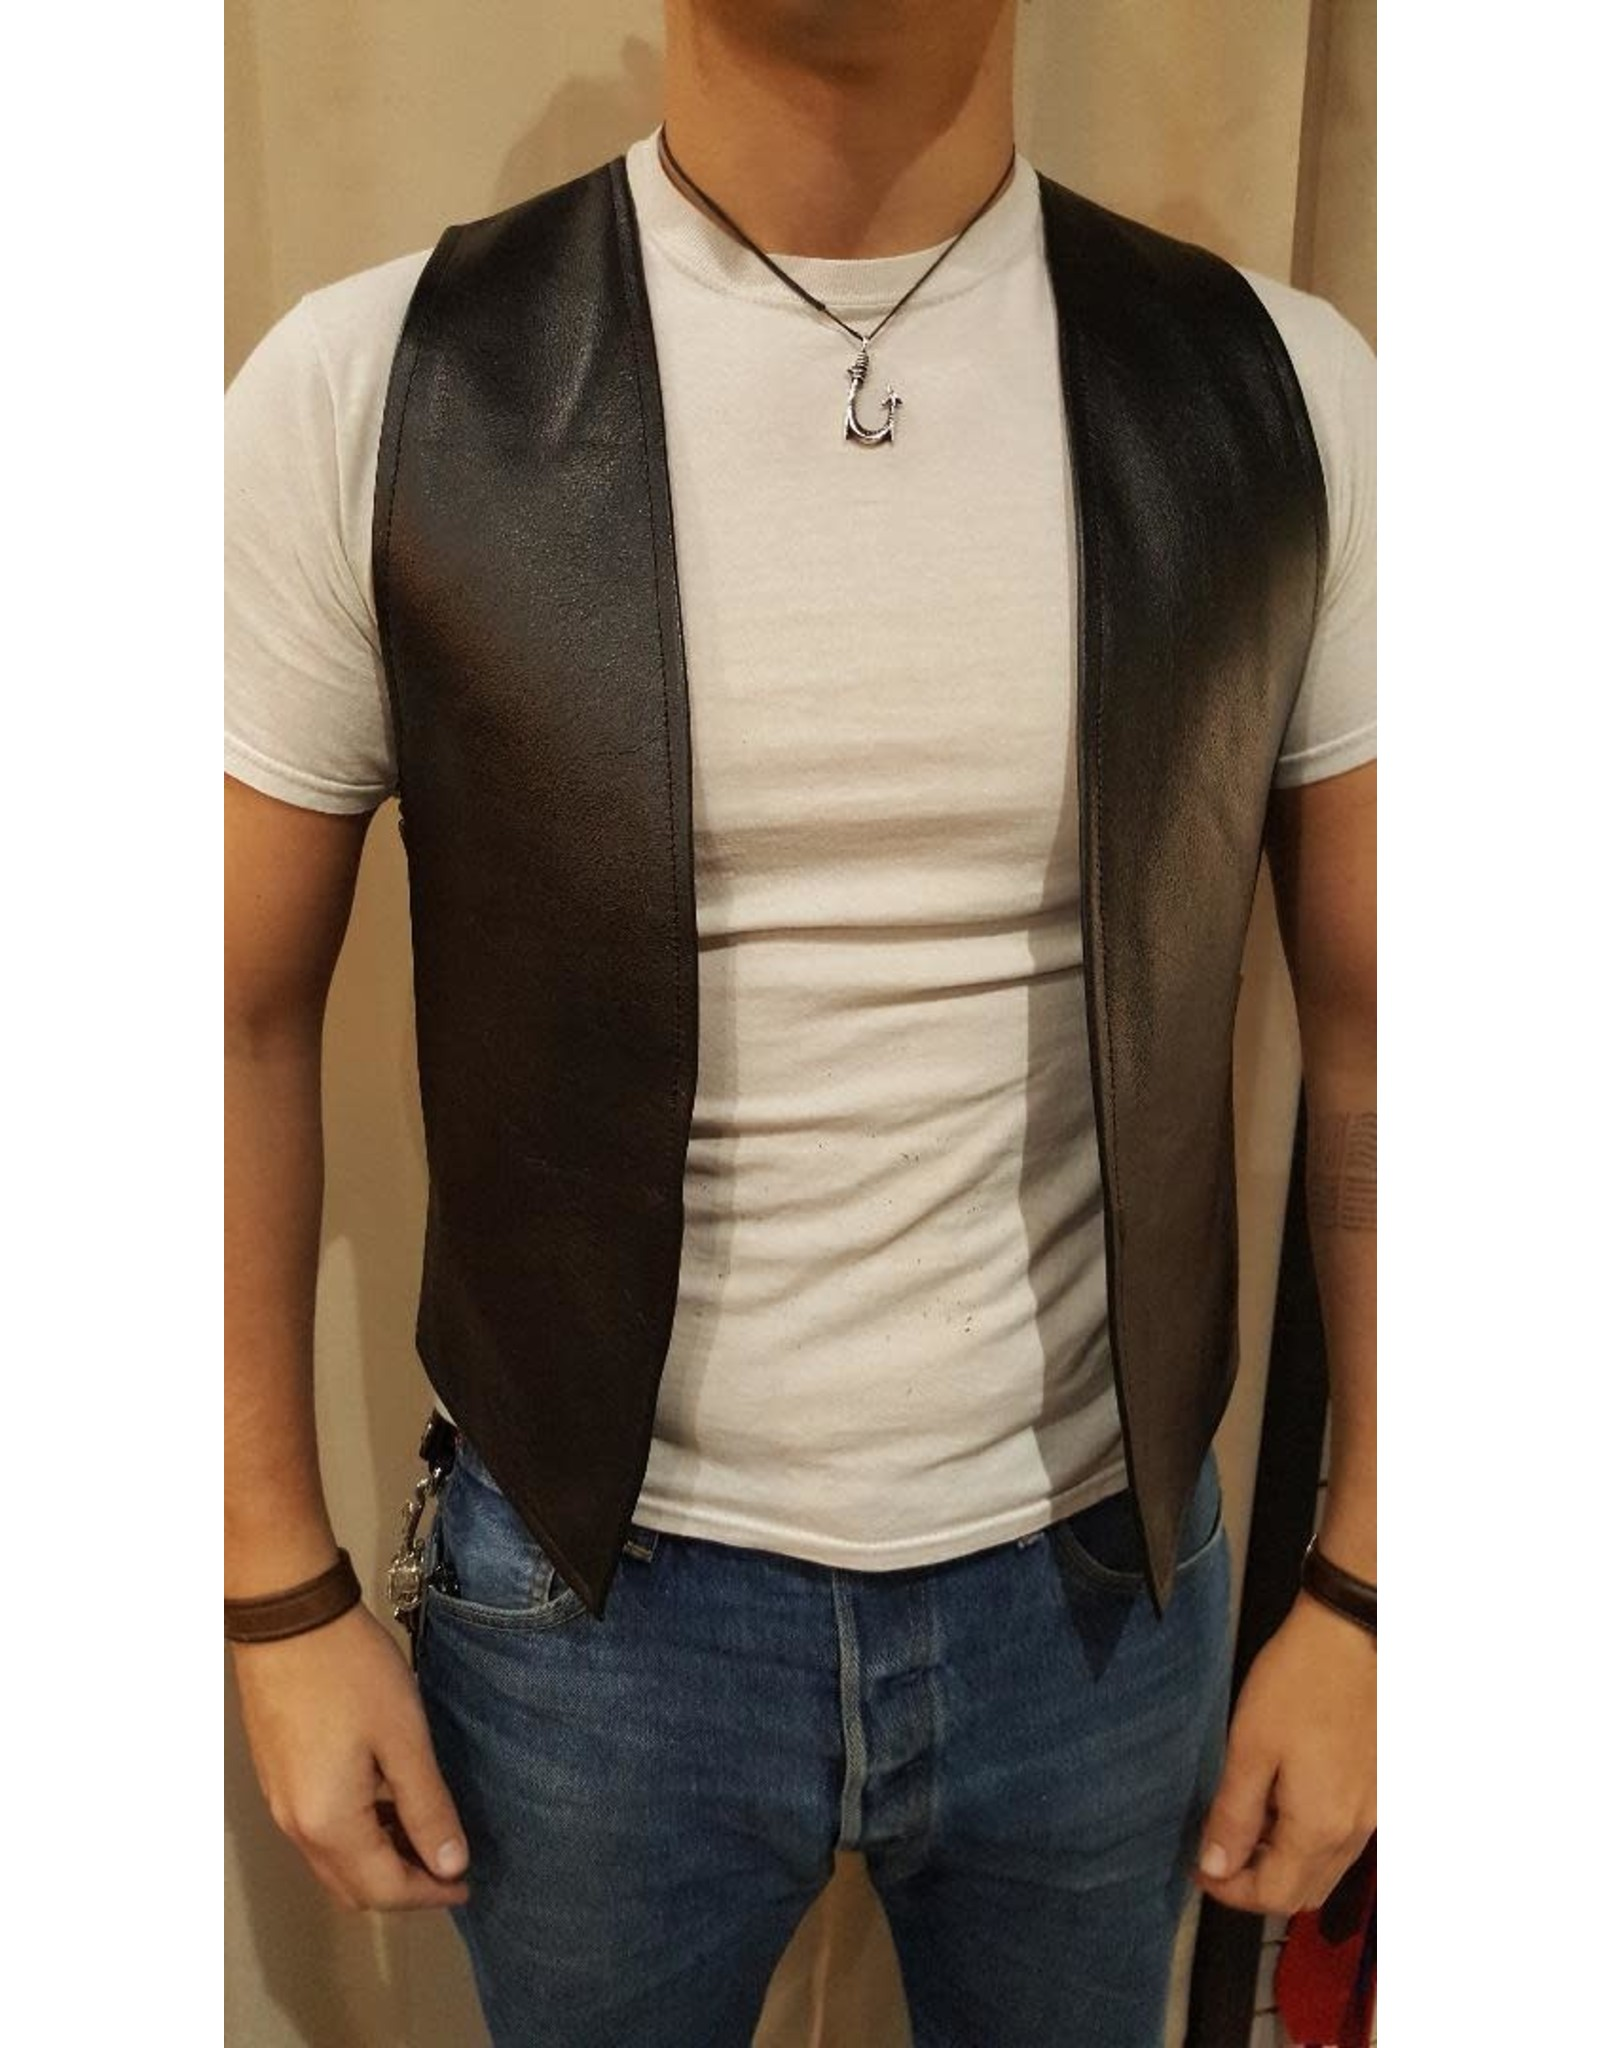 Doghouse Leathers Crafting Doghouse Leathers Bar Vest with Color Stripe